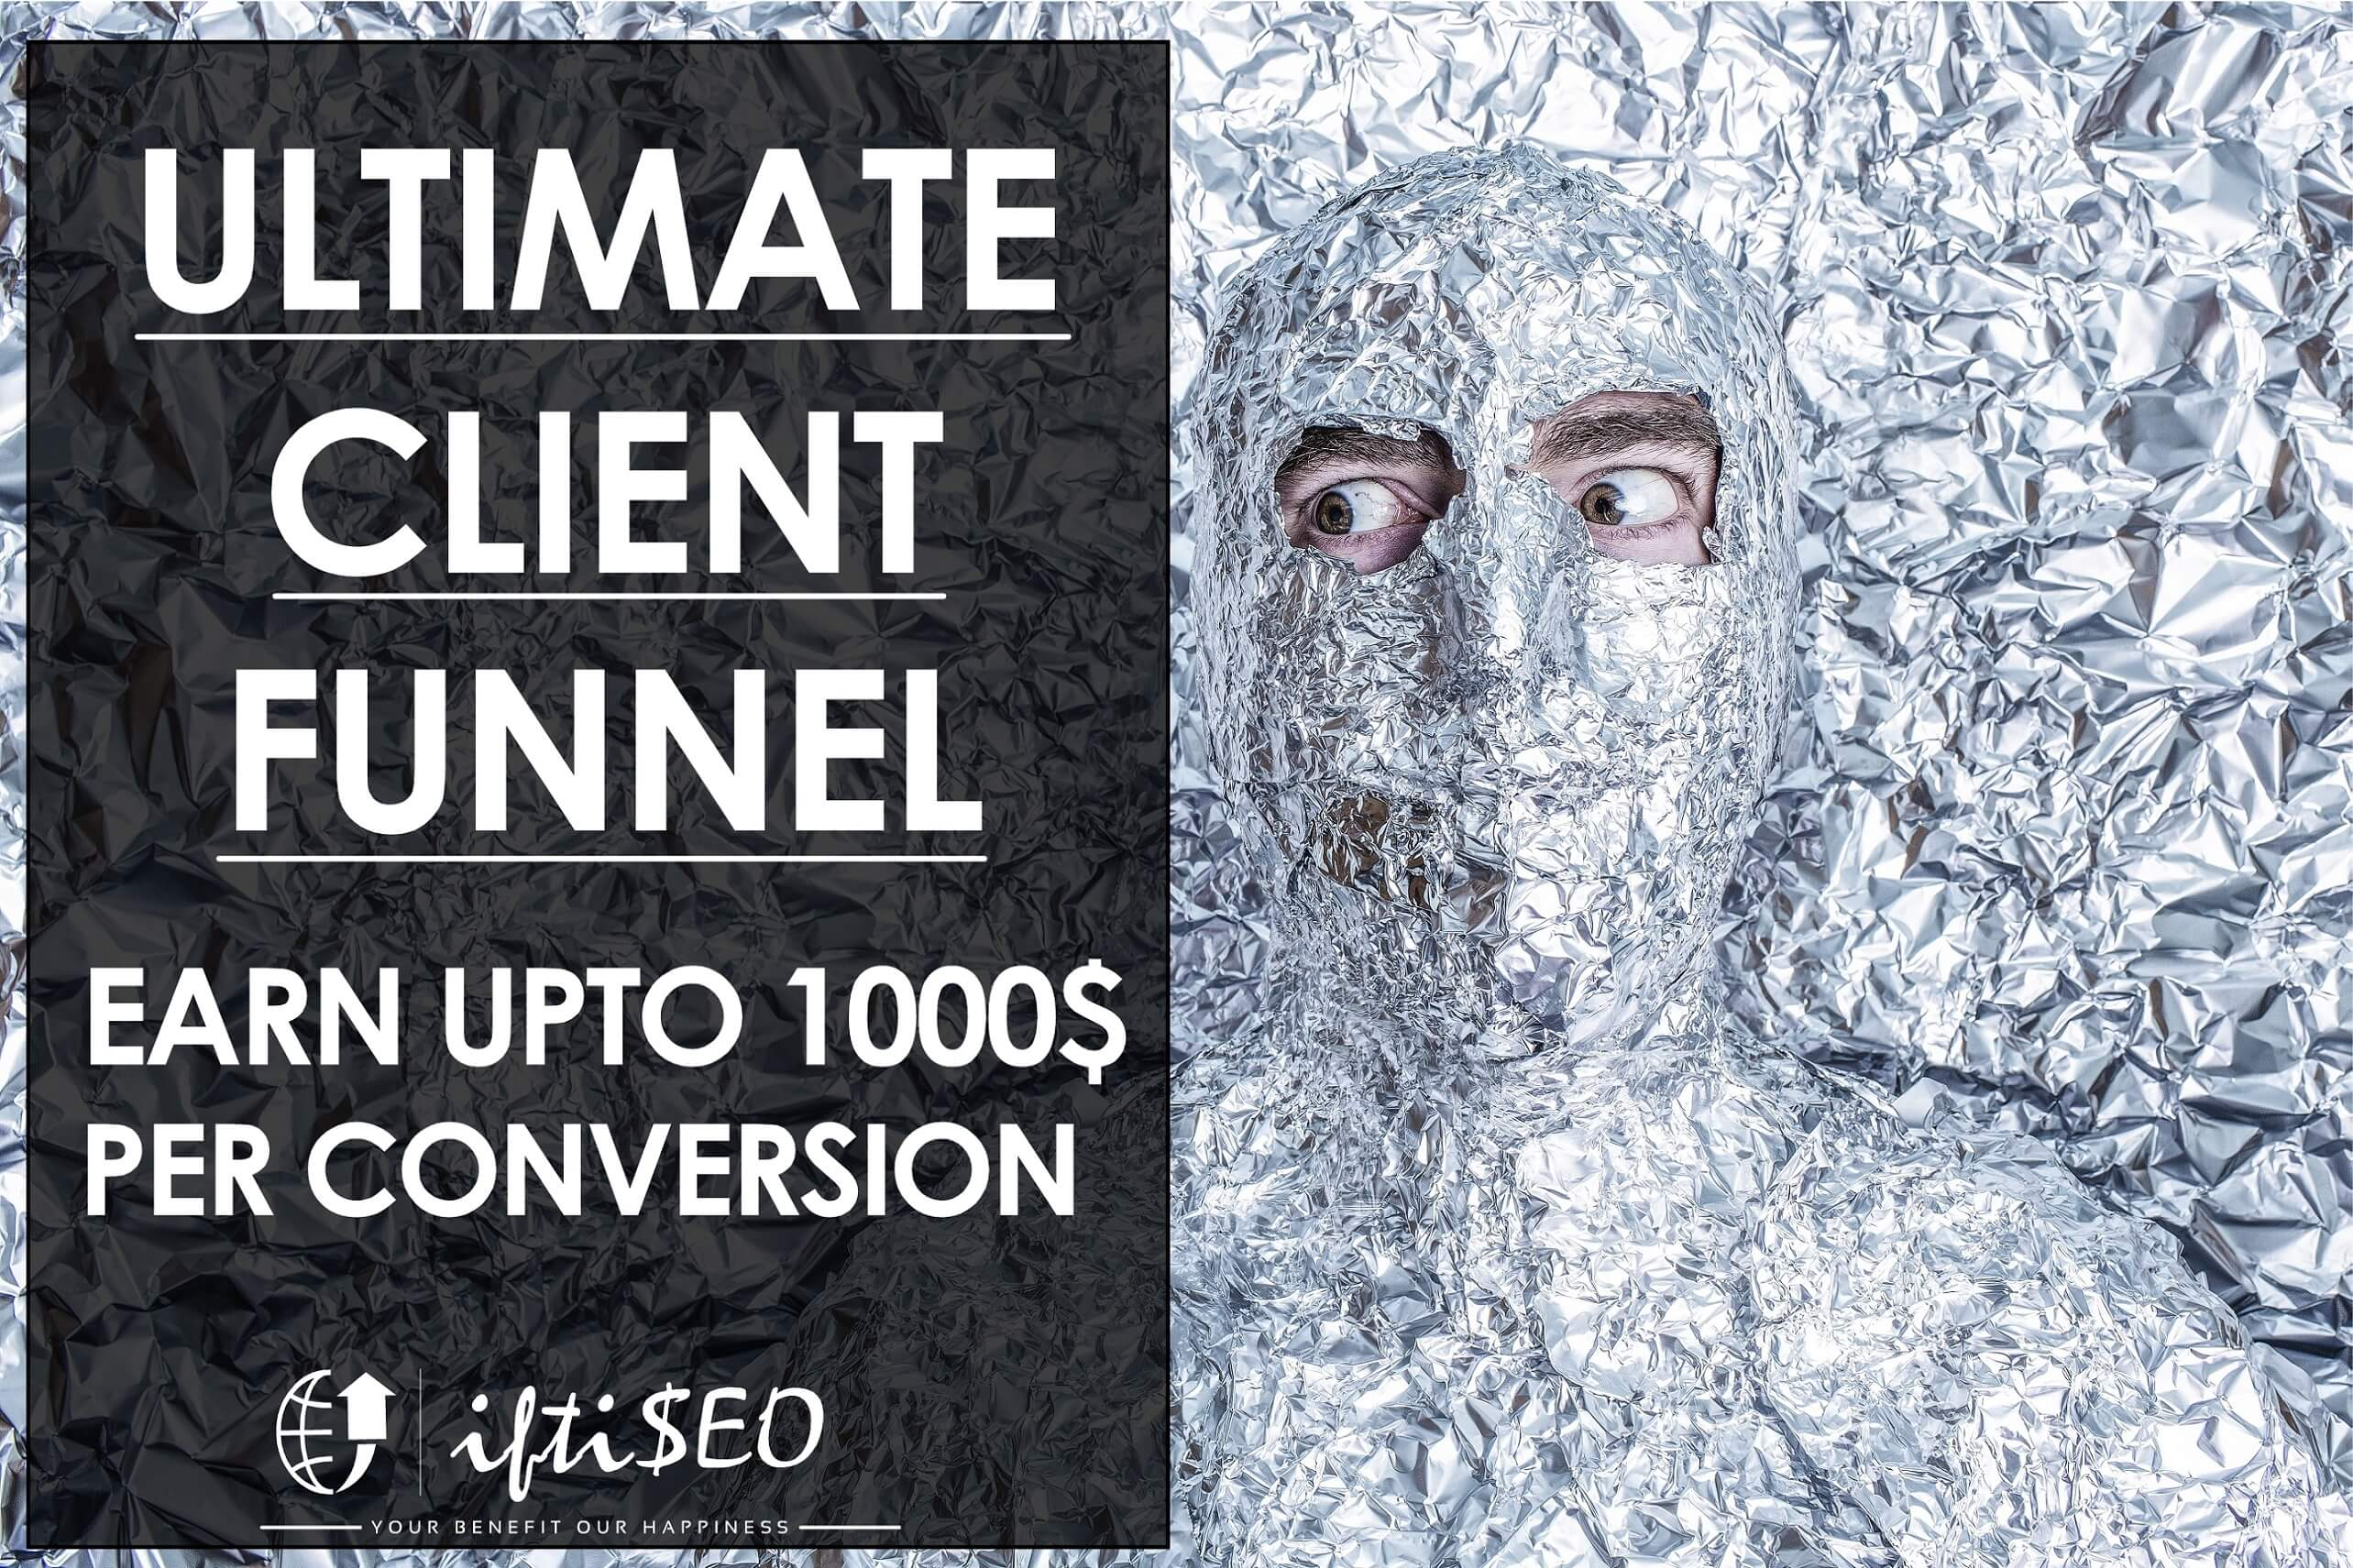 Ultimate client funnel -iftiseo